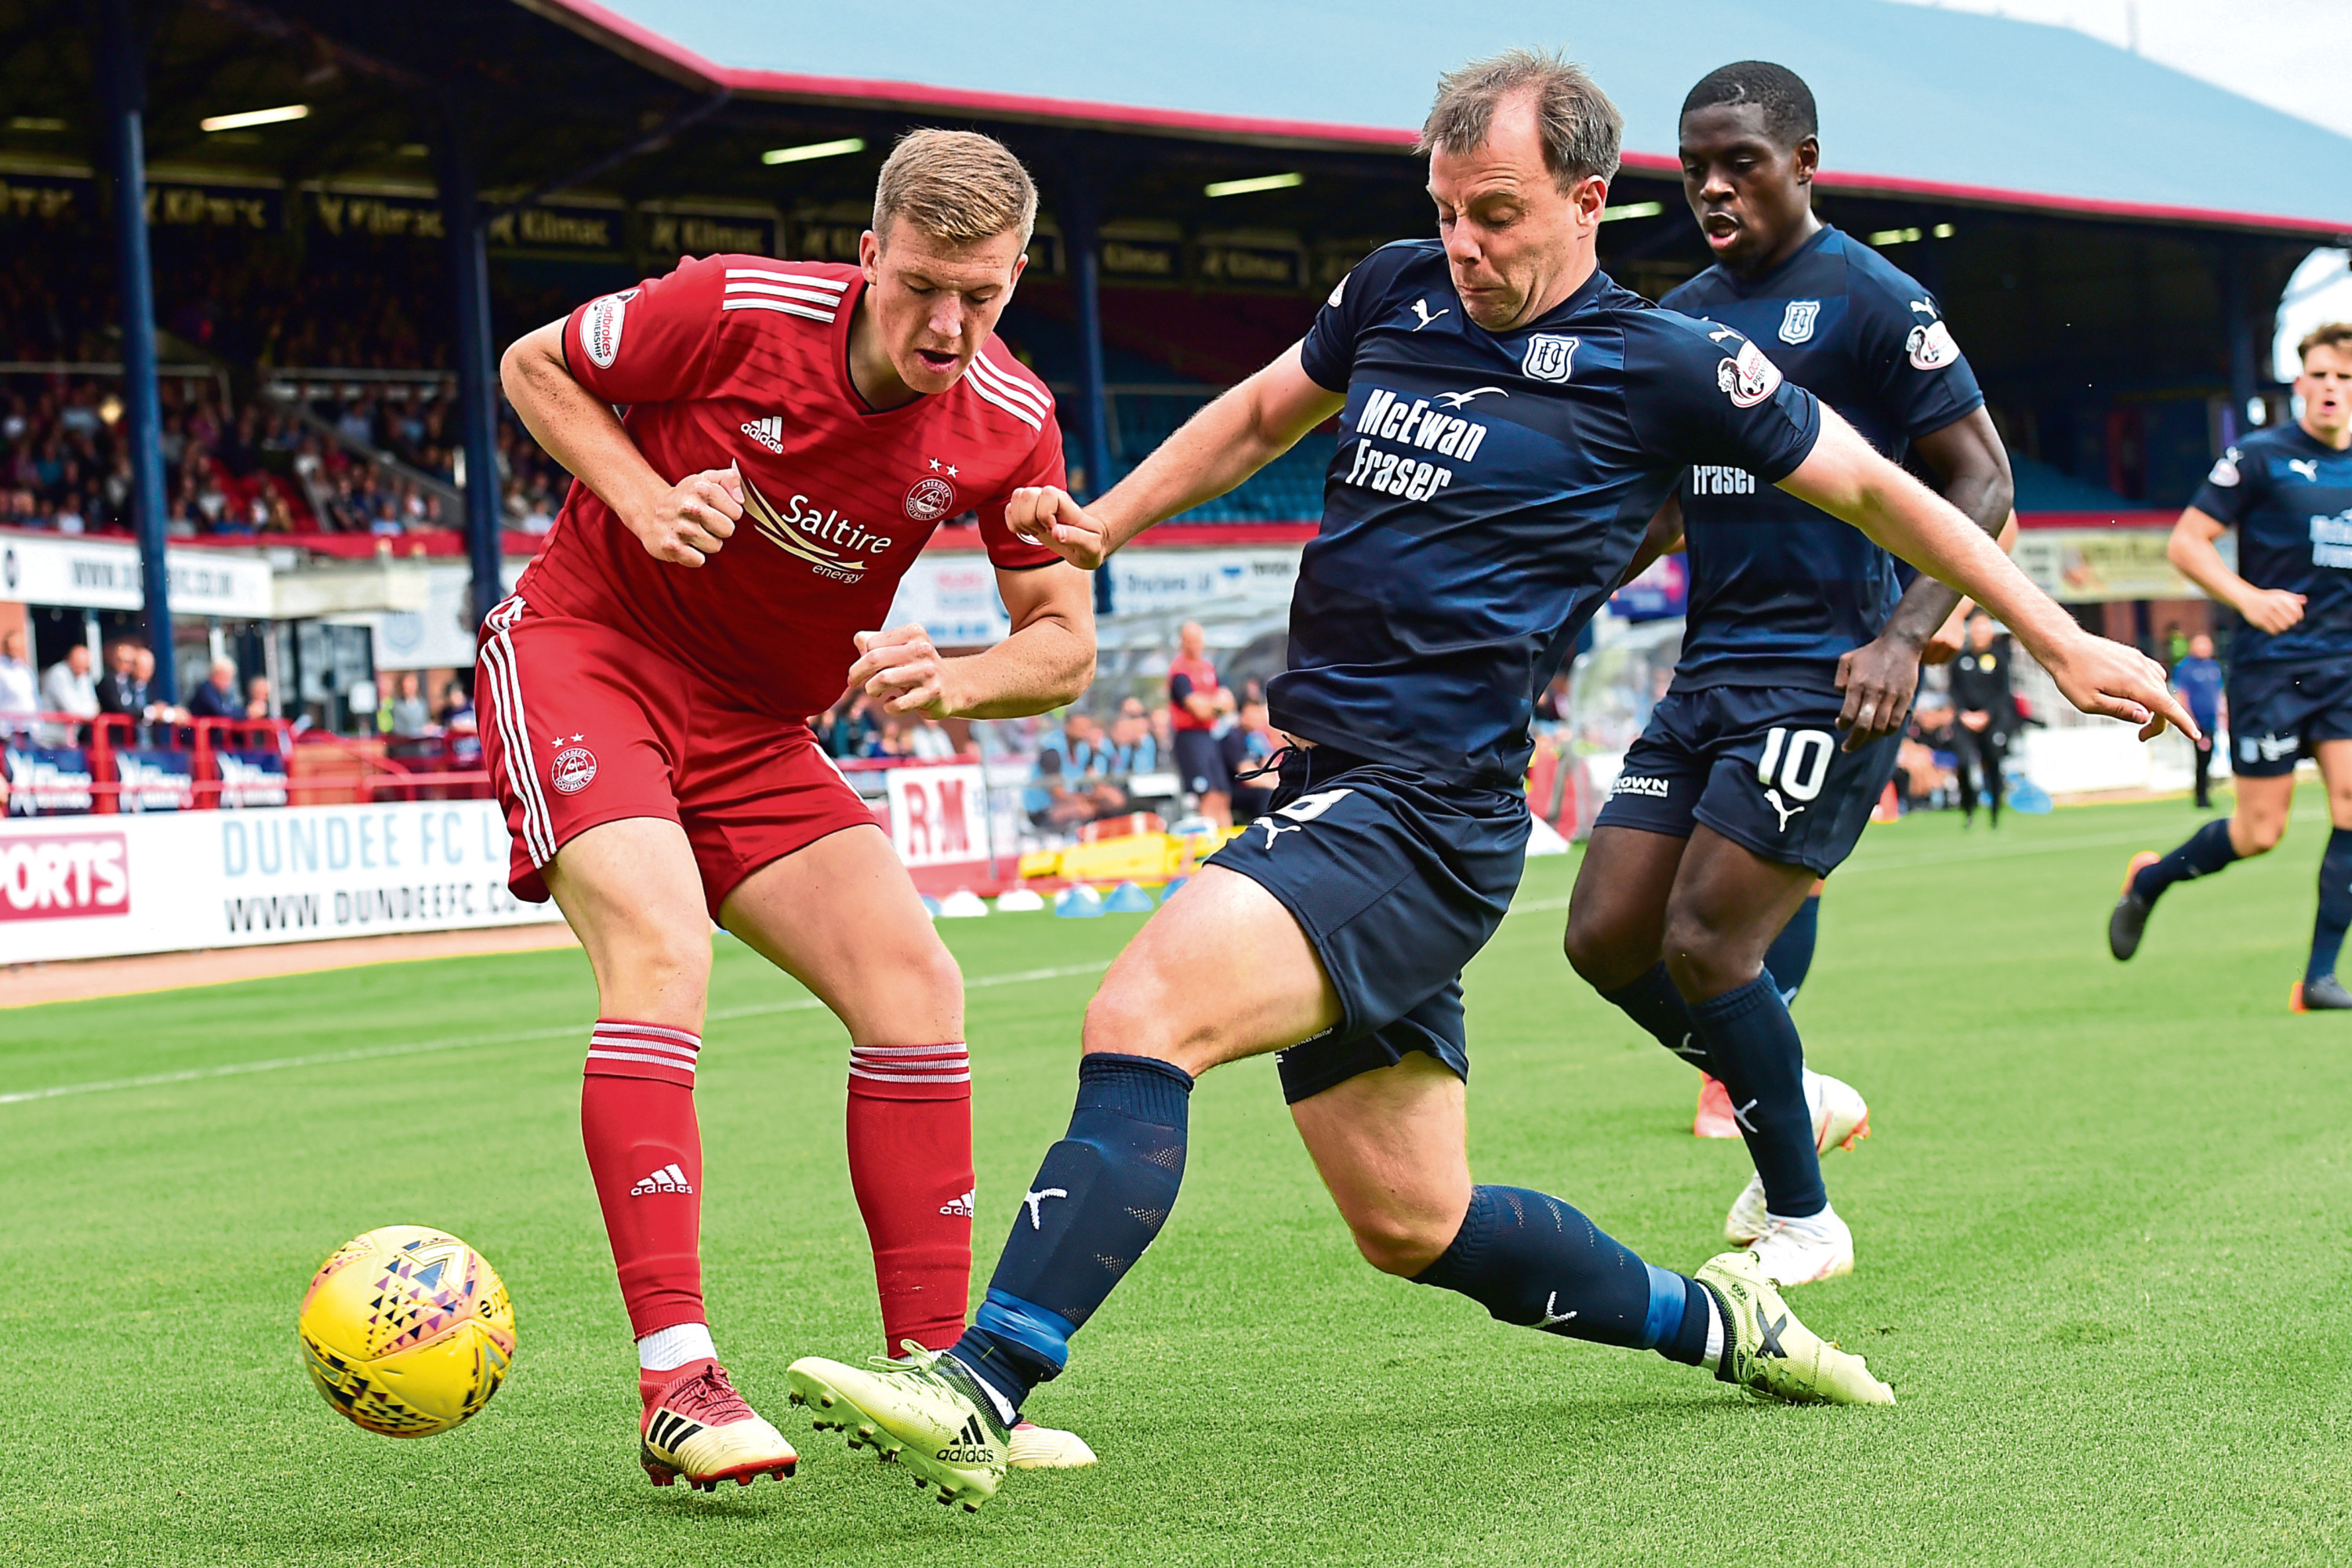 Dundee midfield man Paul McGowan says it's up to the players to get                                  themselves out of the trouble they find themselves in at the foot of the Premiership table after just five games